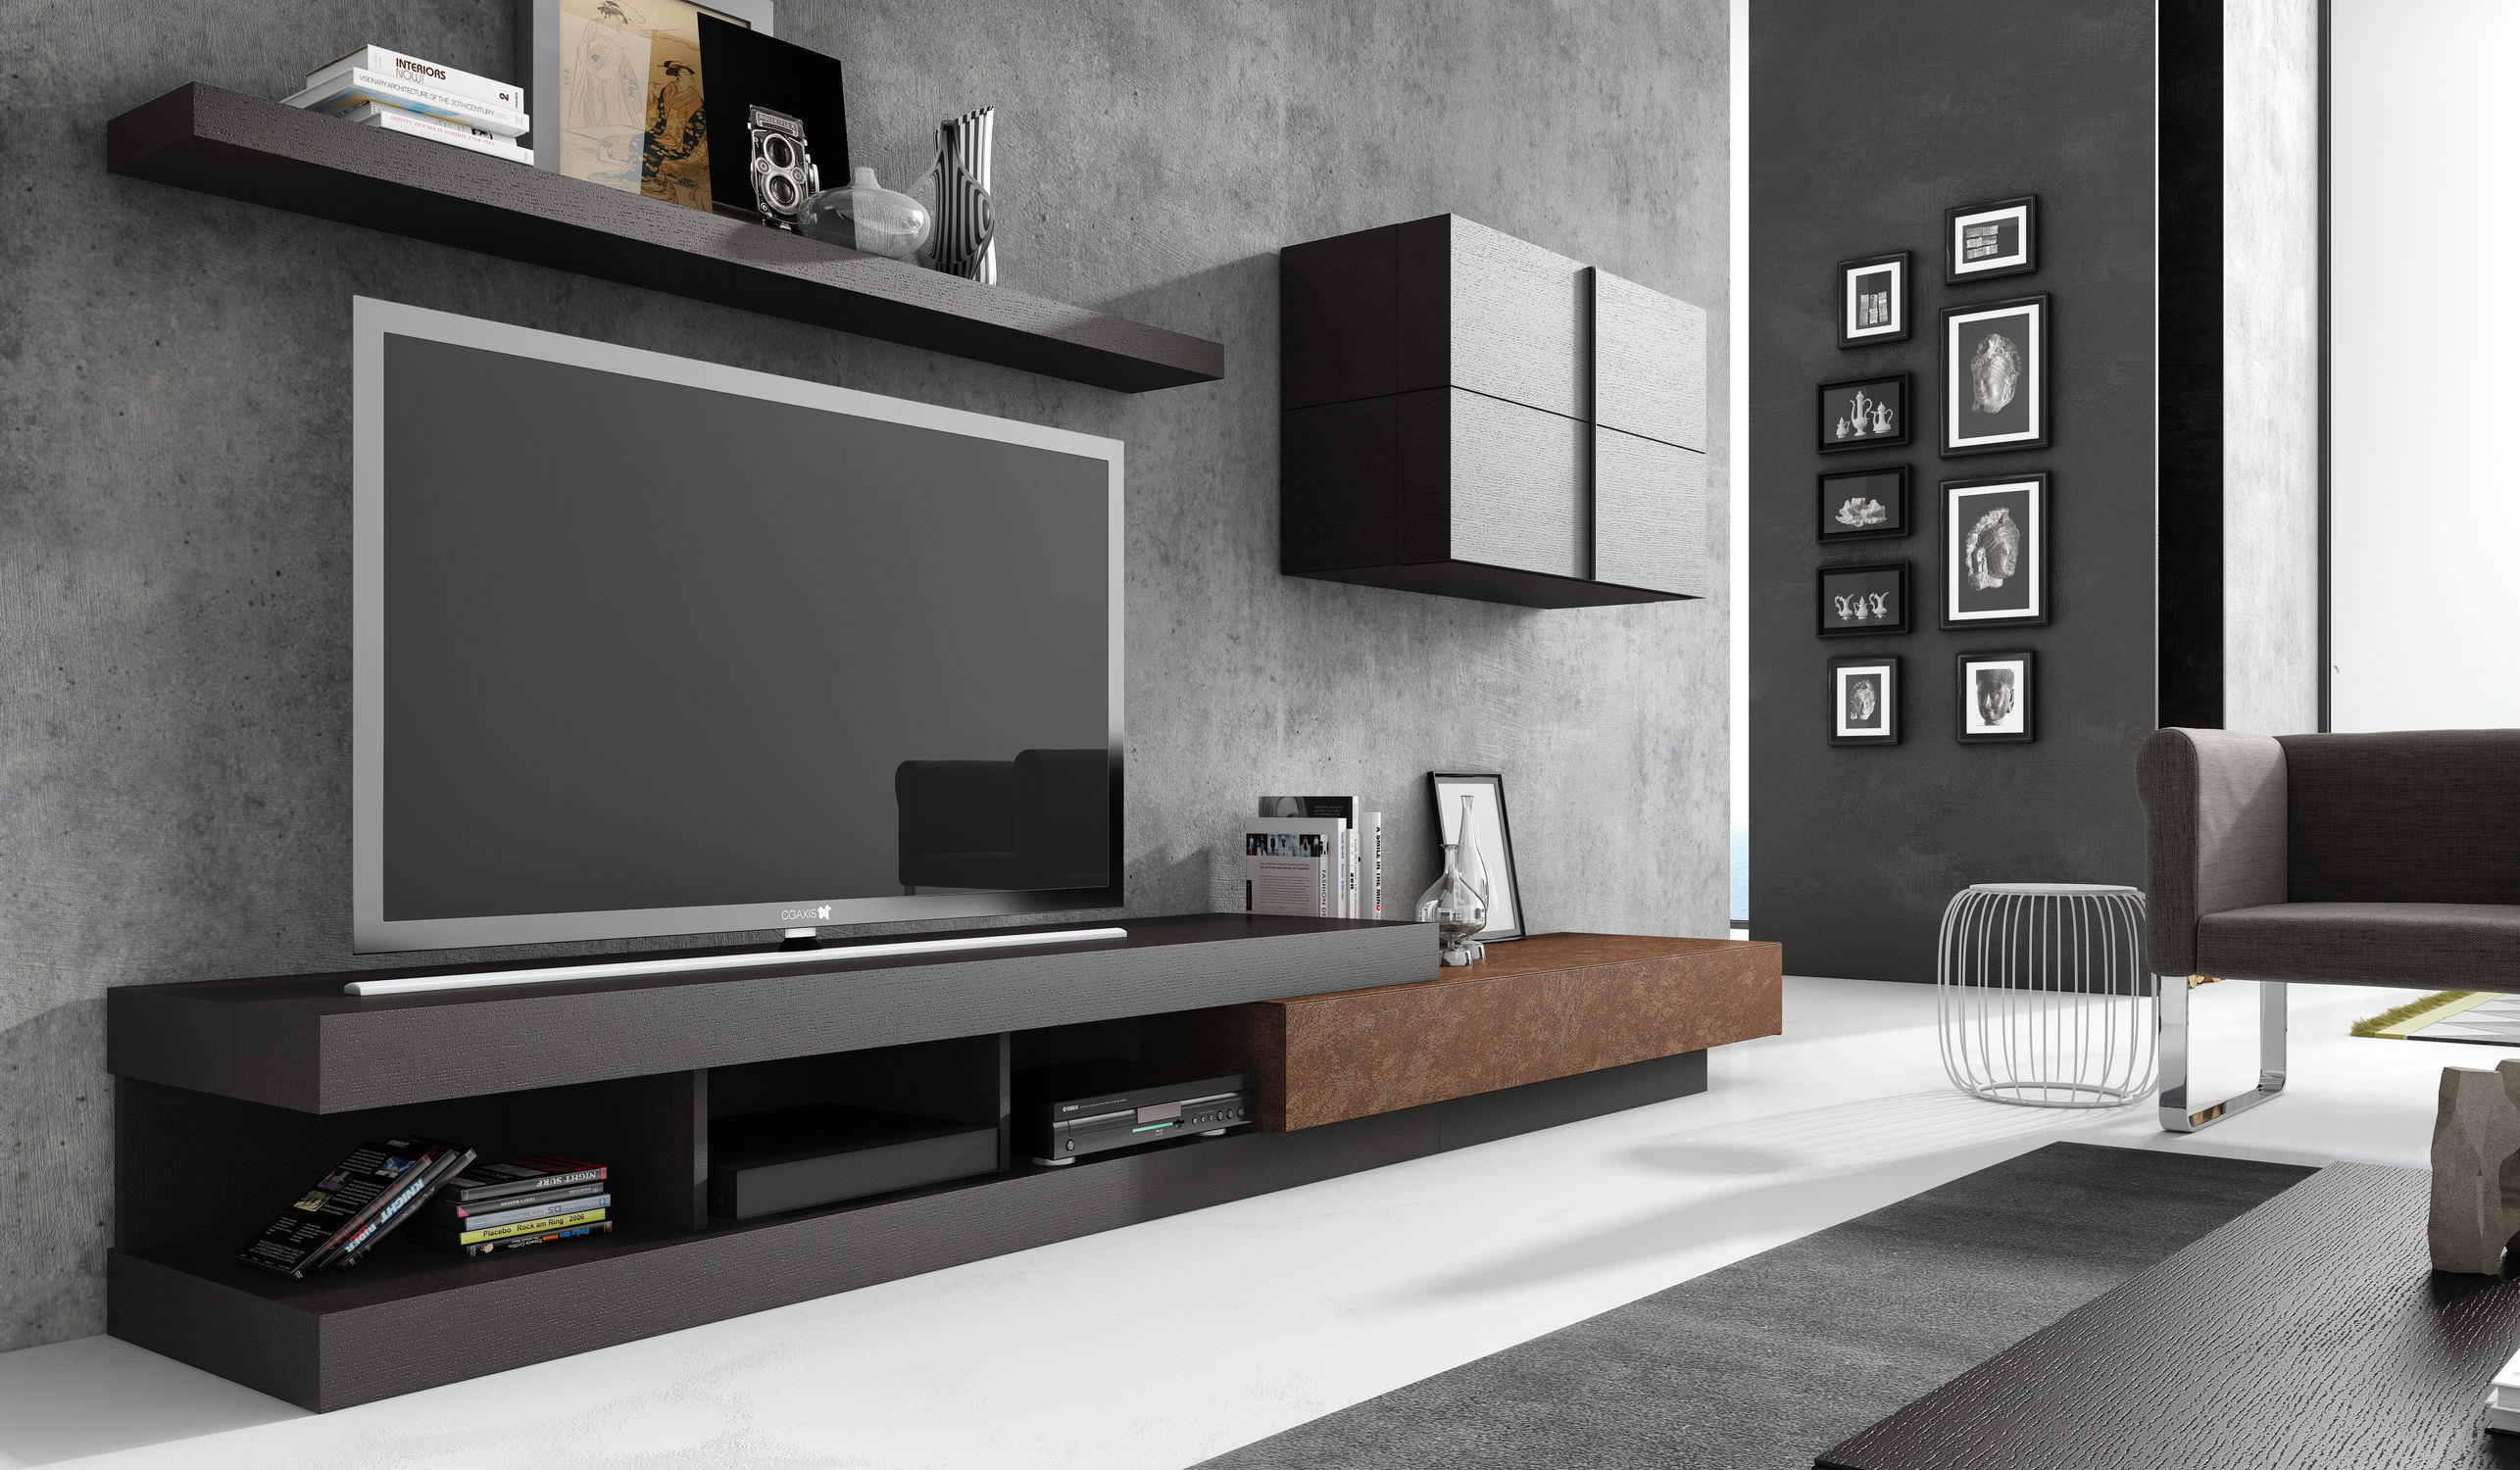 meuble de tele contemporain id es de d coration int rieure french decor. Black Bedroom Furniture Sets. Home Design Ideas